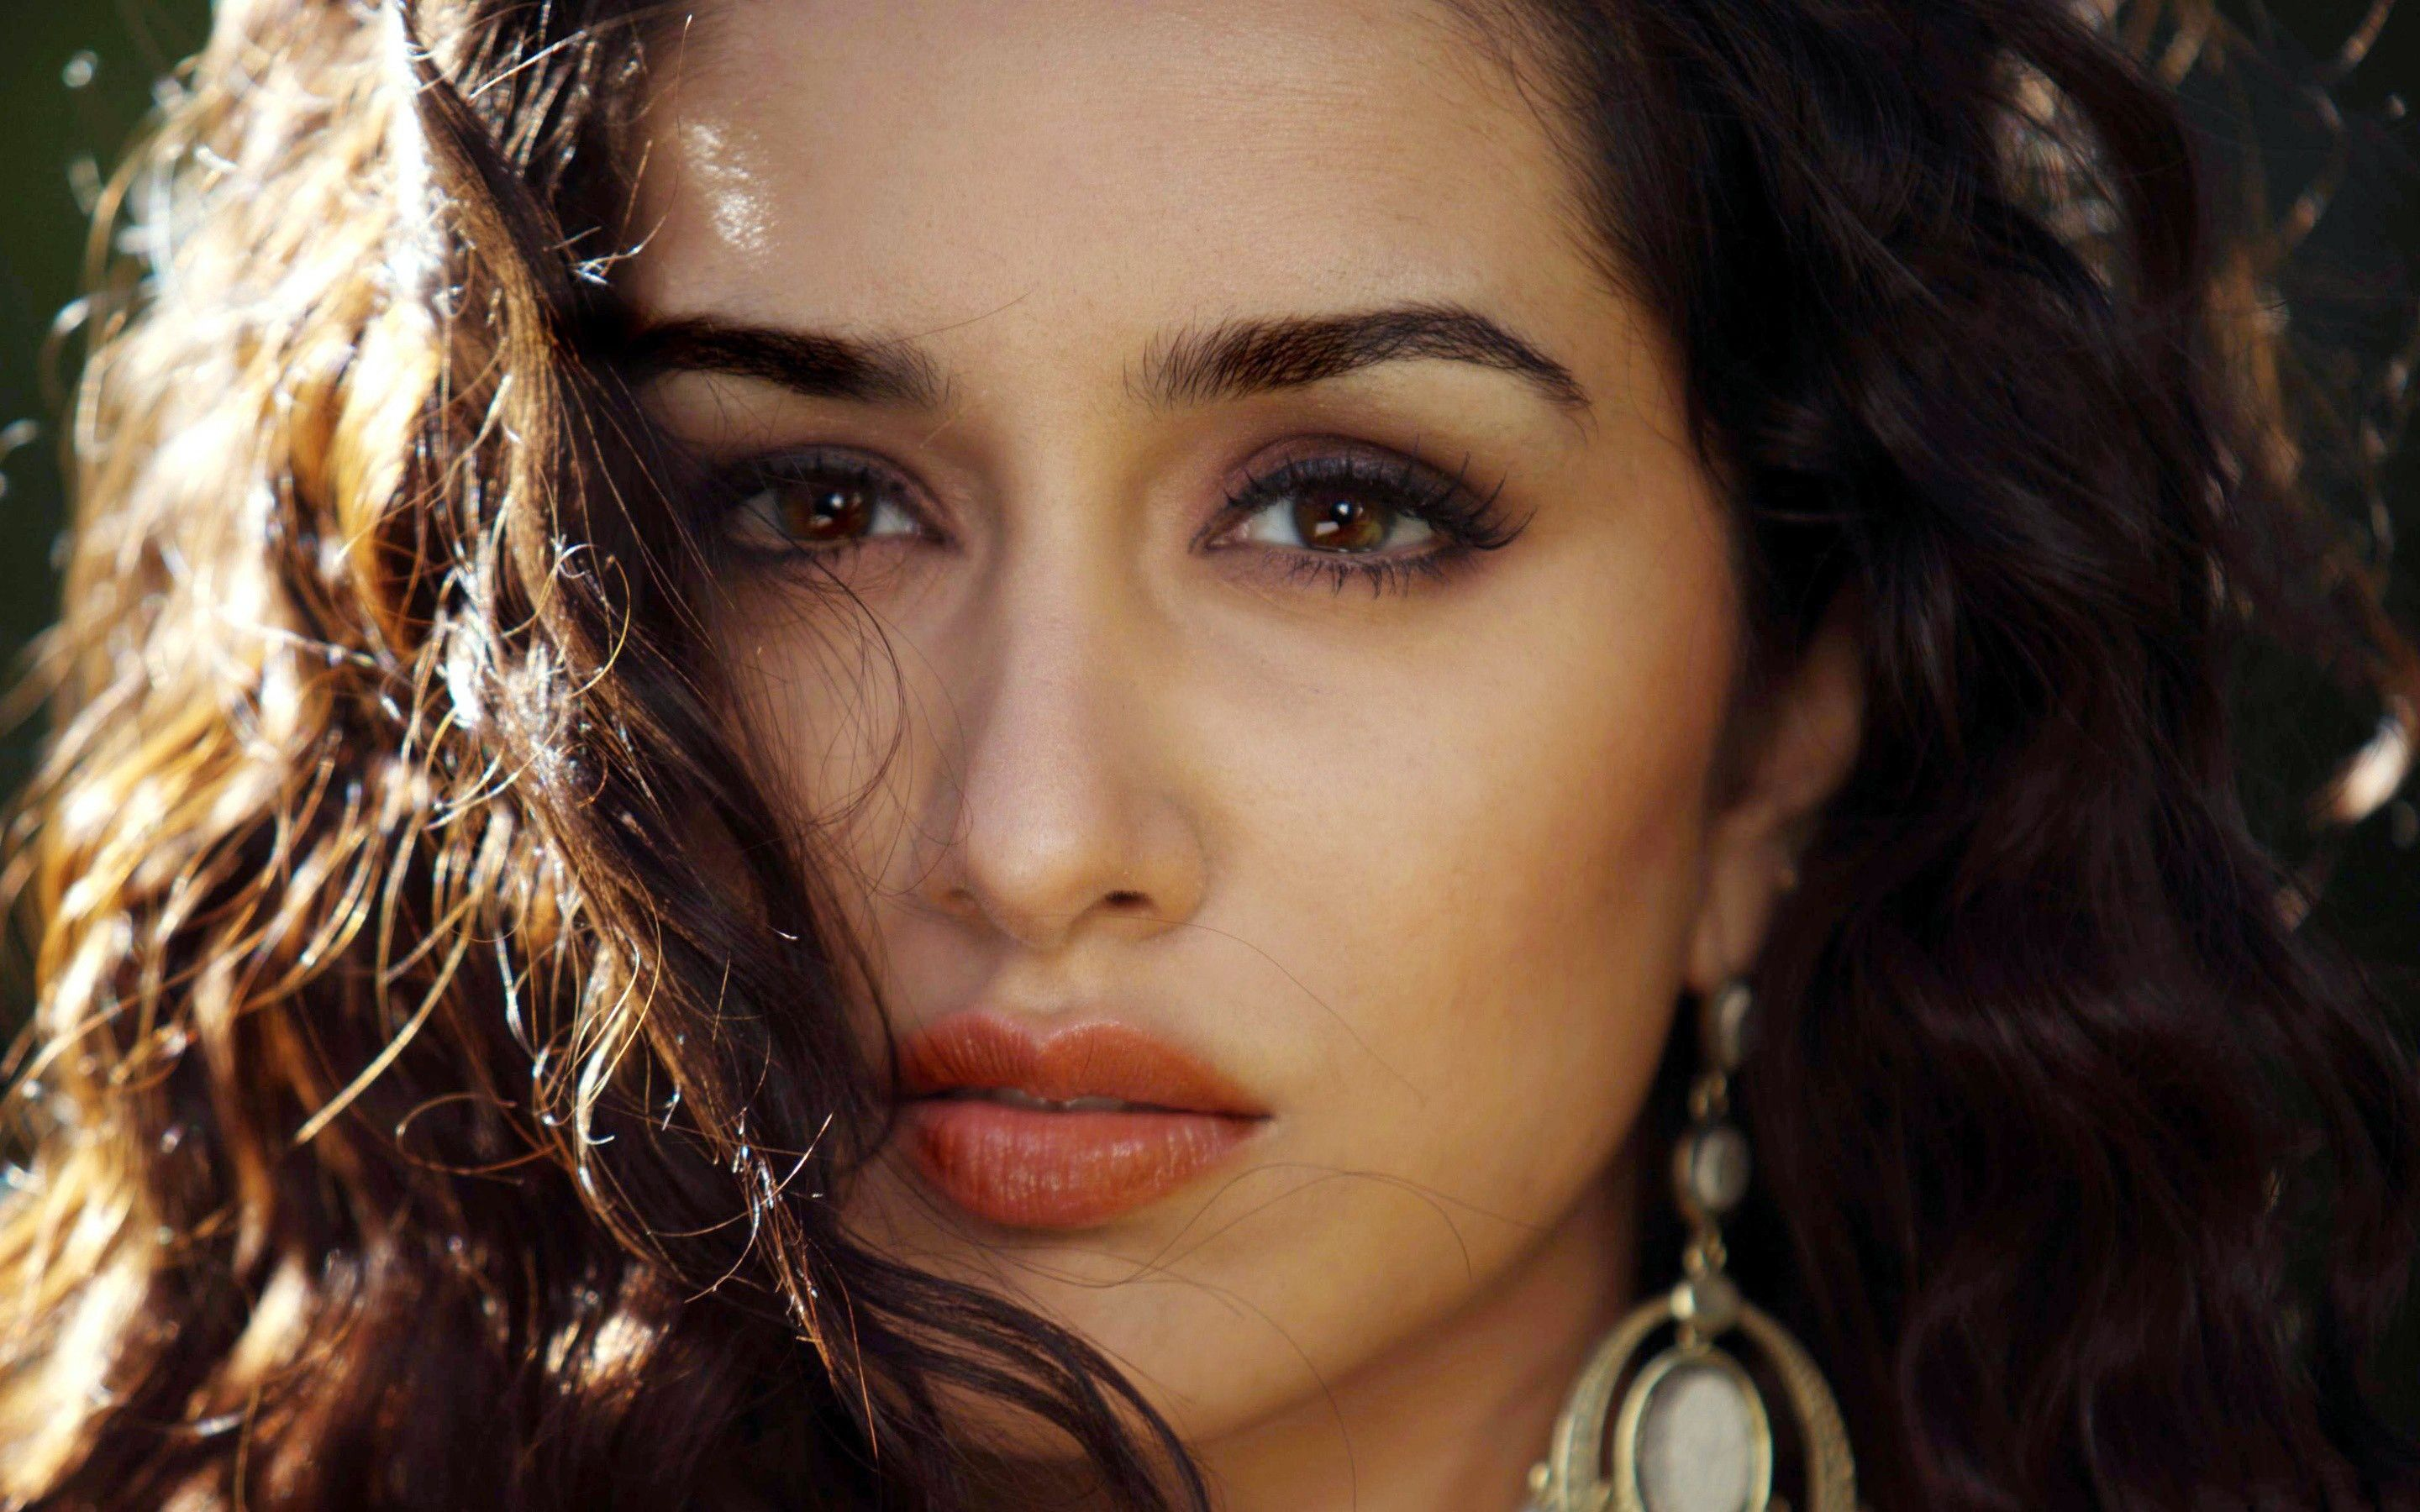 shraddha kapoor hd wallpapers 1080p | shradhha kapoor | pinterest